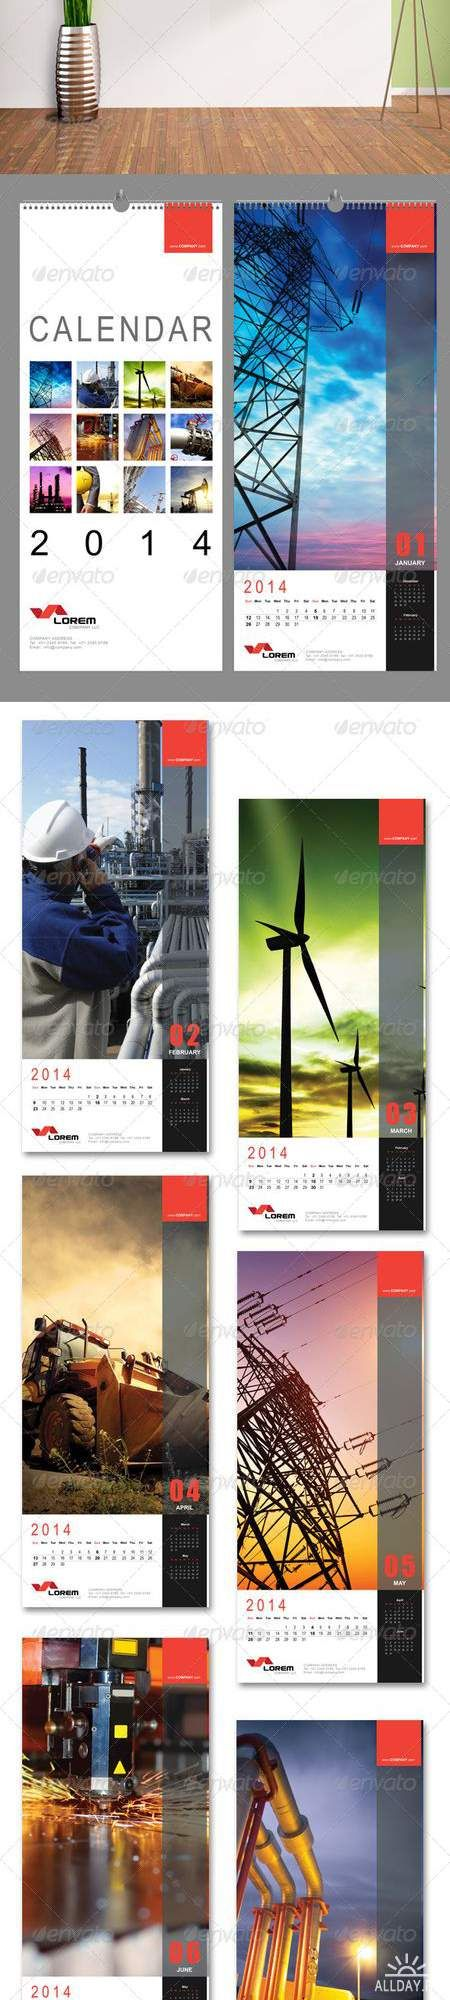 CORPORATE WALL CALENDAR 2014 * Interesting, long shape adds interest. Also allows for space while not interrupting design with spiral hardware in middle.